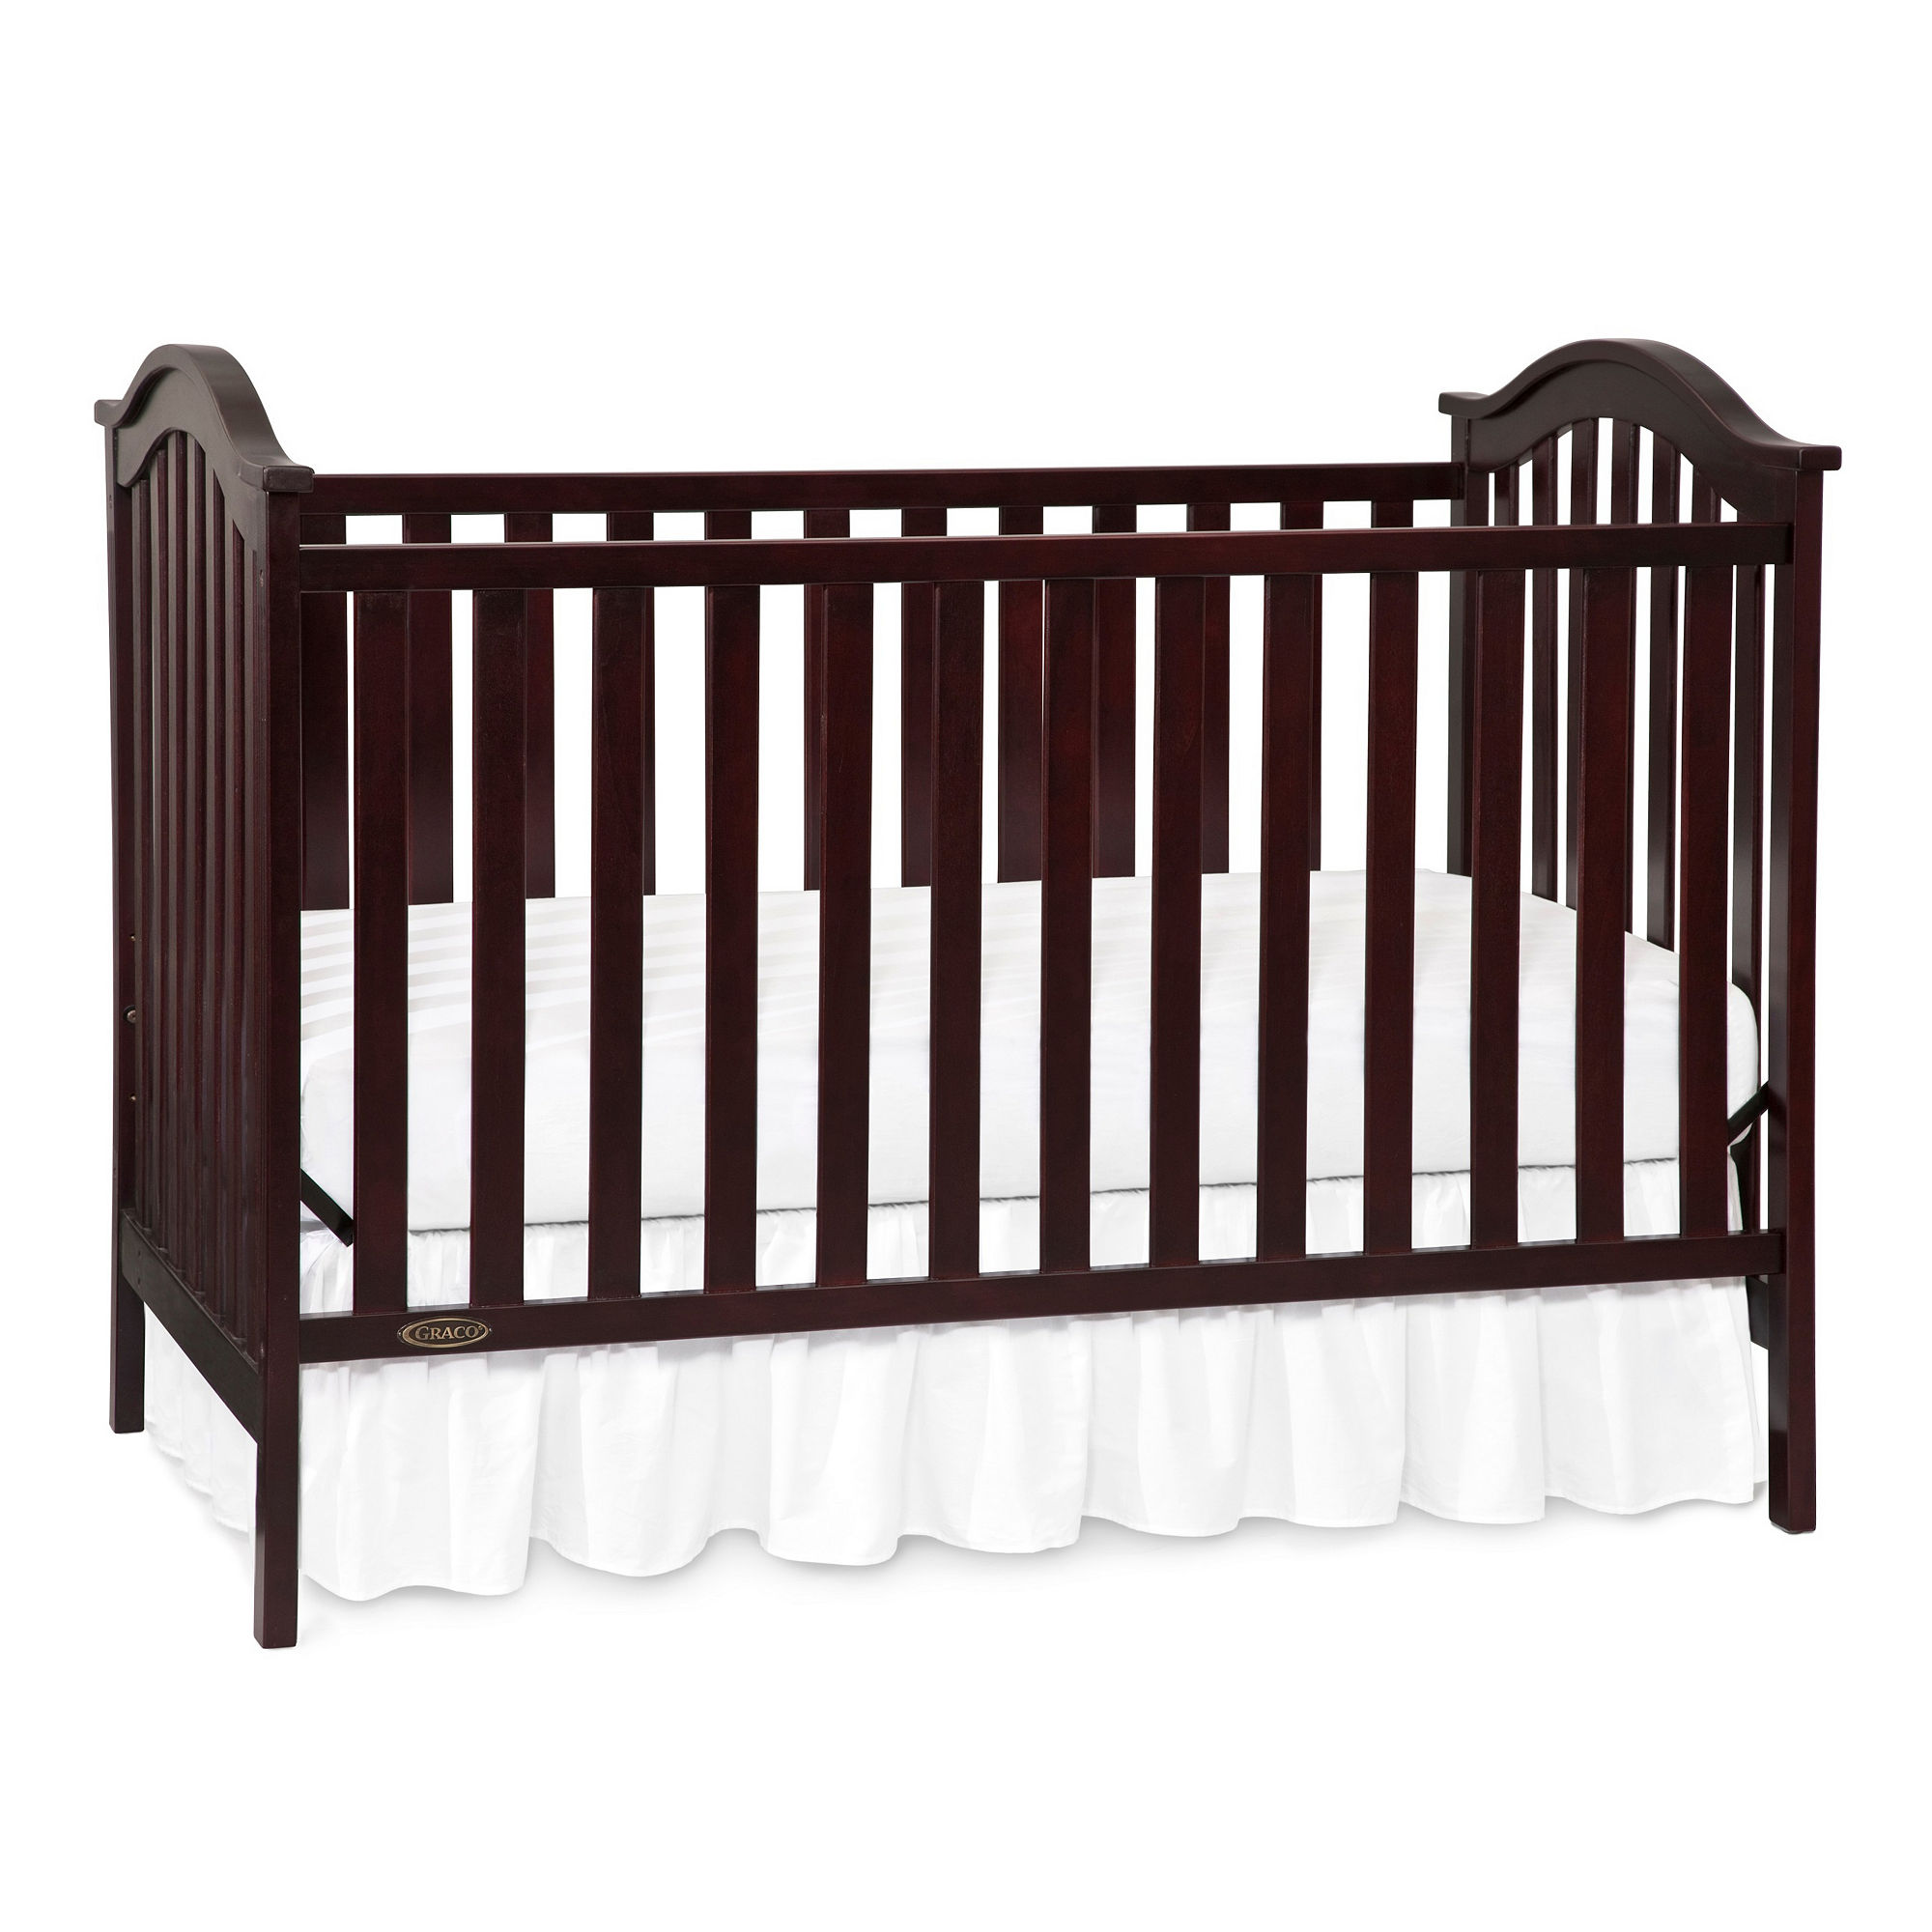 Get Verona Fixed Side Convertible Crib Limited